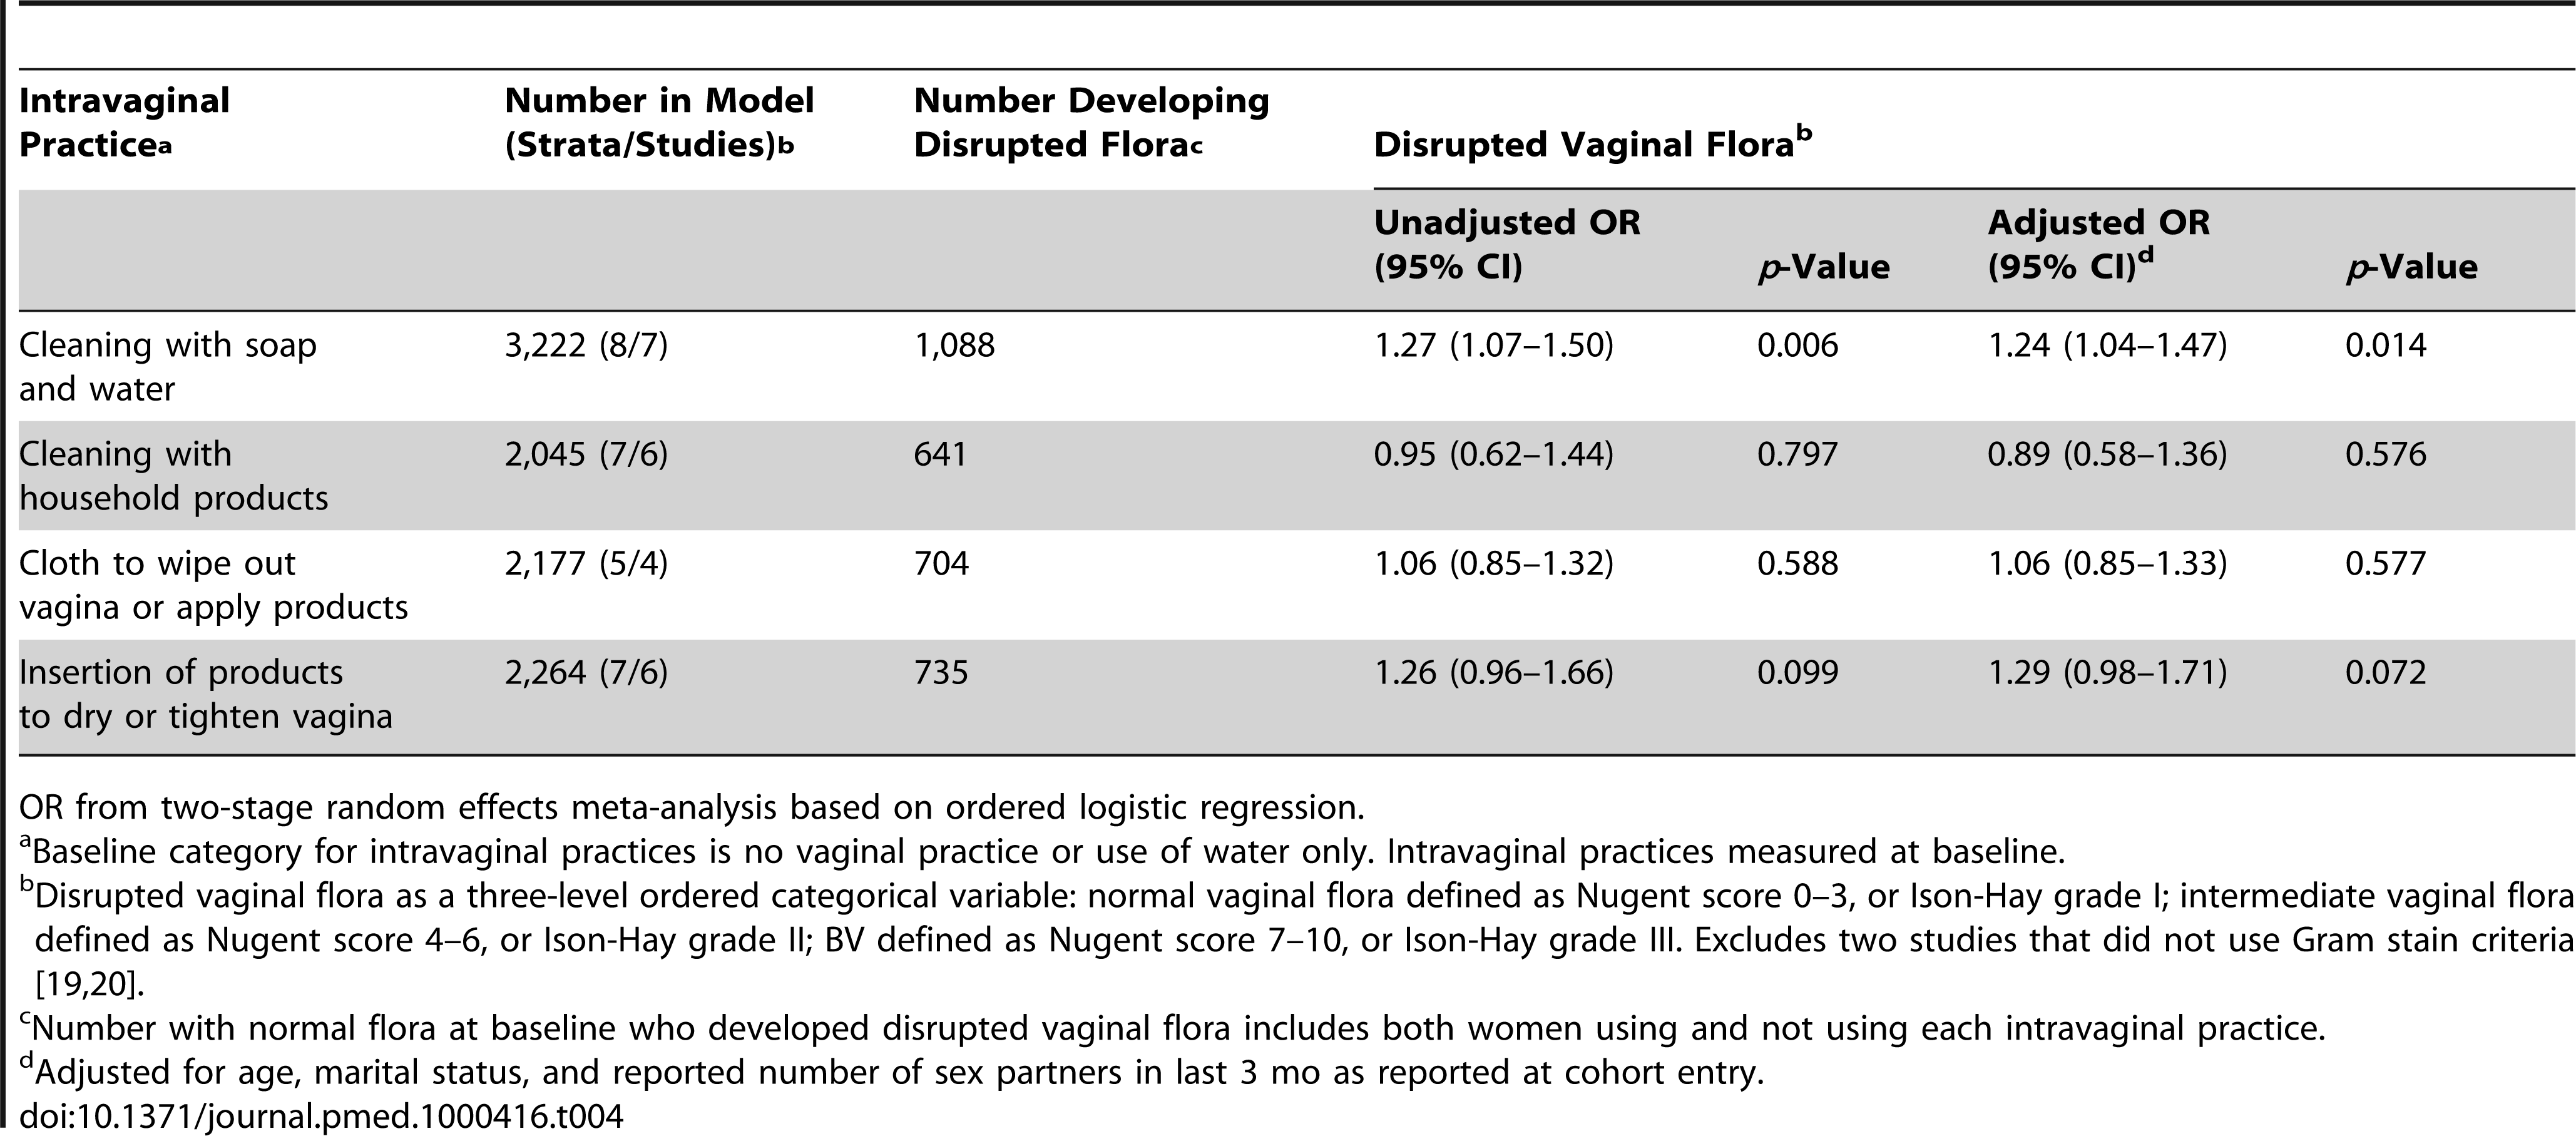 Associations between intravaginal practices and disrupted vaginal flora in women with normal vaginal flora at baseline.